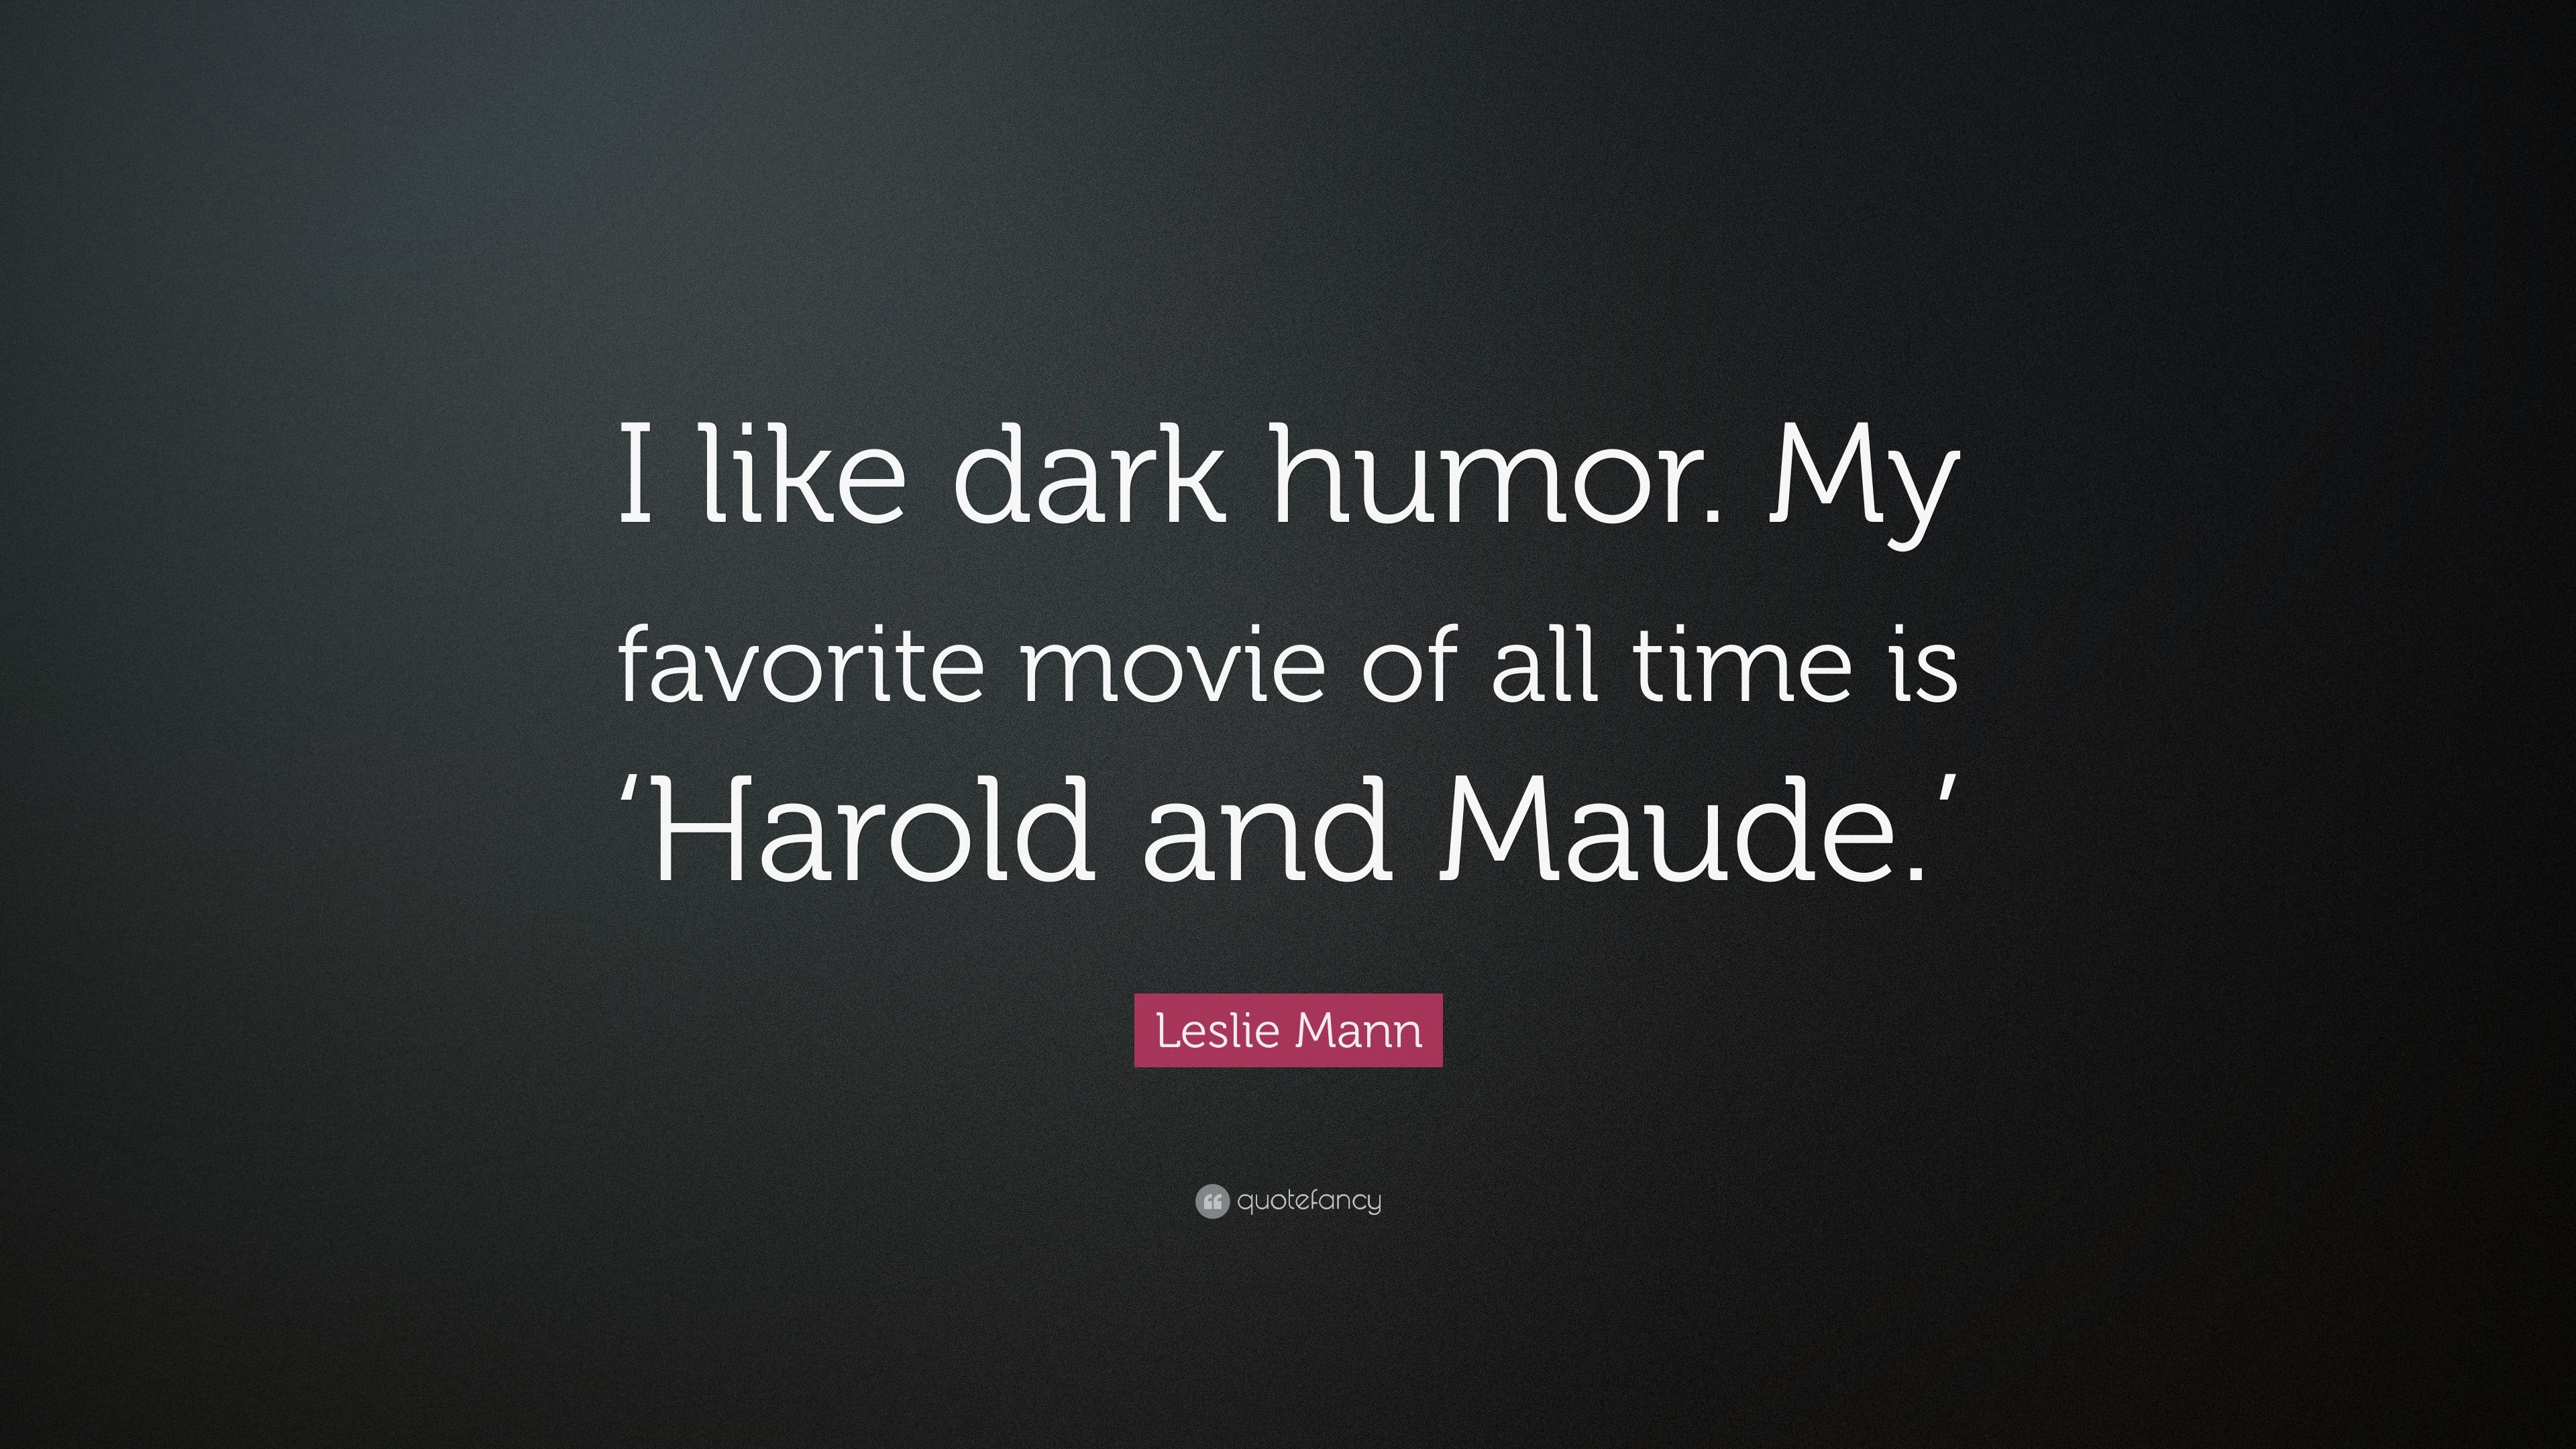 Harold And Maude Quotes | Leslie Mann Quote I Like Dark Humor My Favorite Movie Of All Time